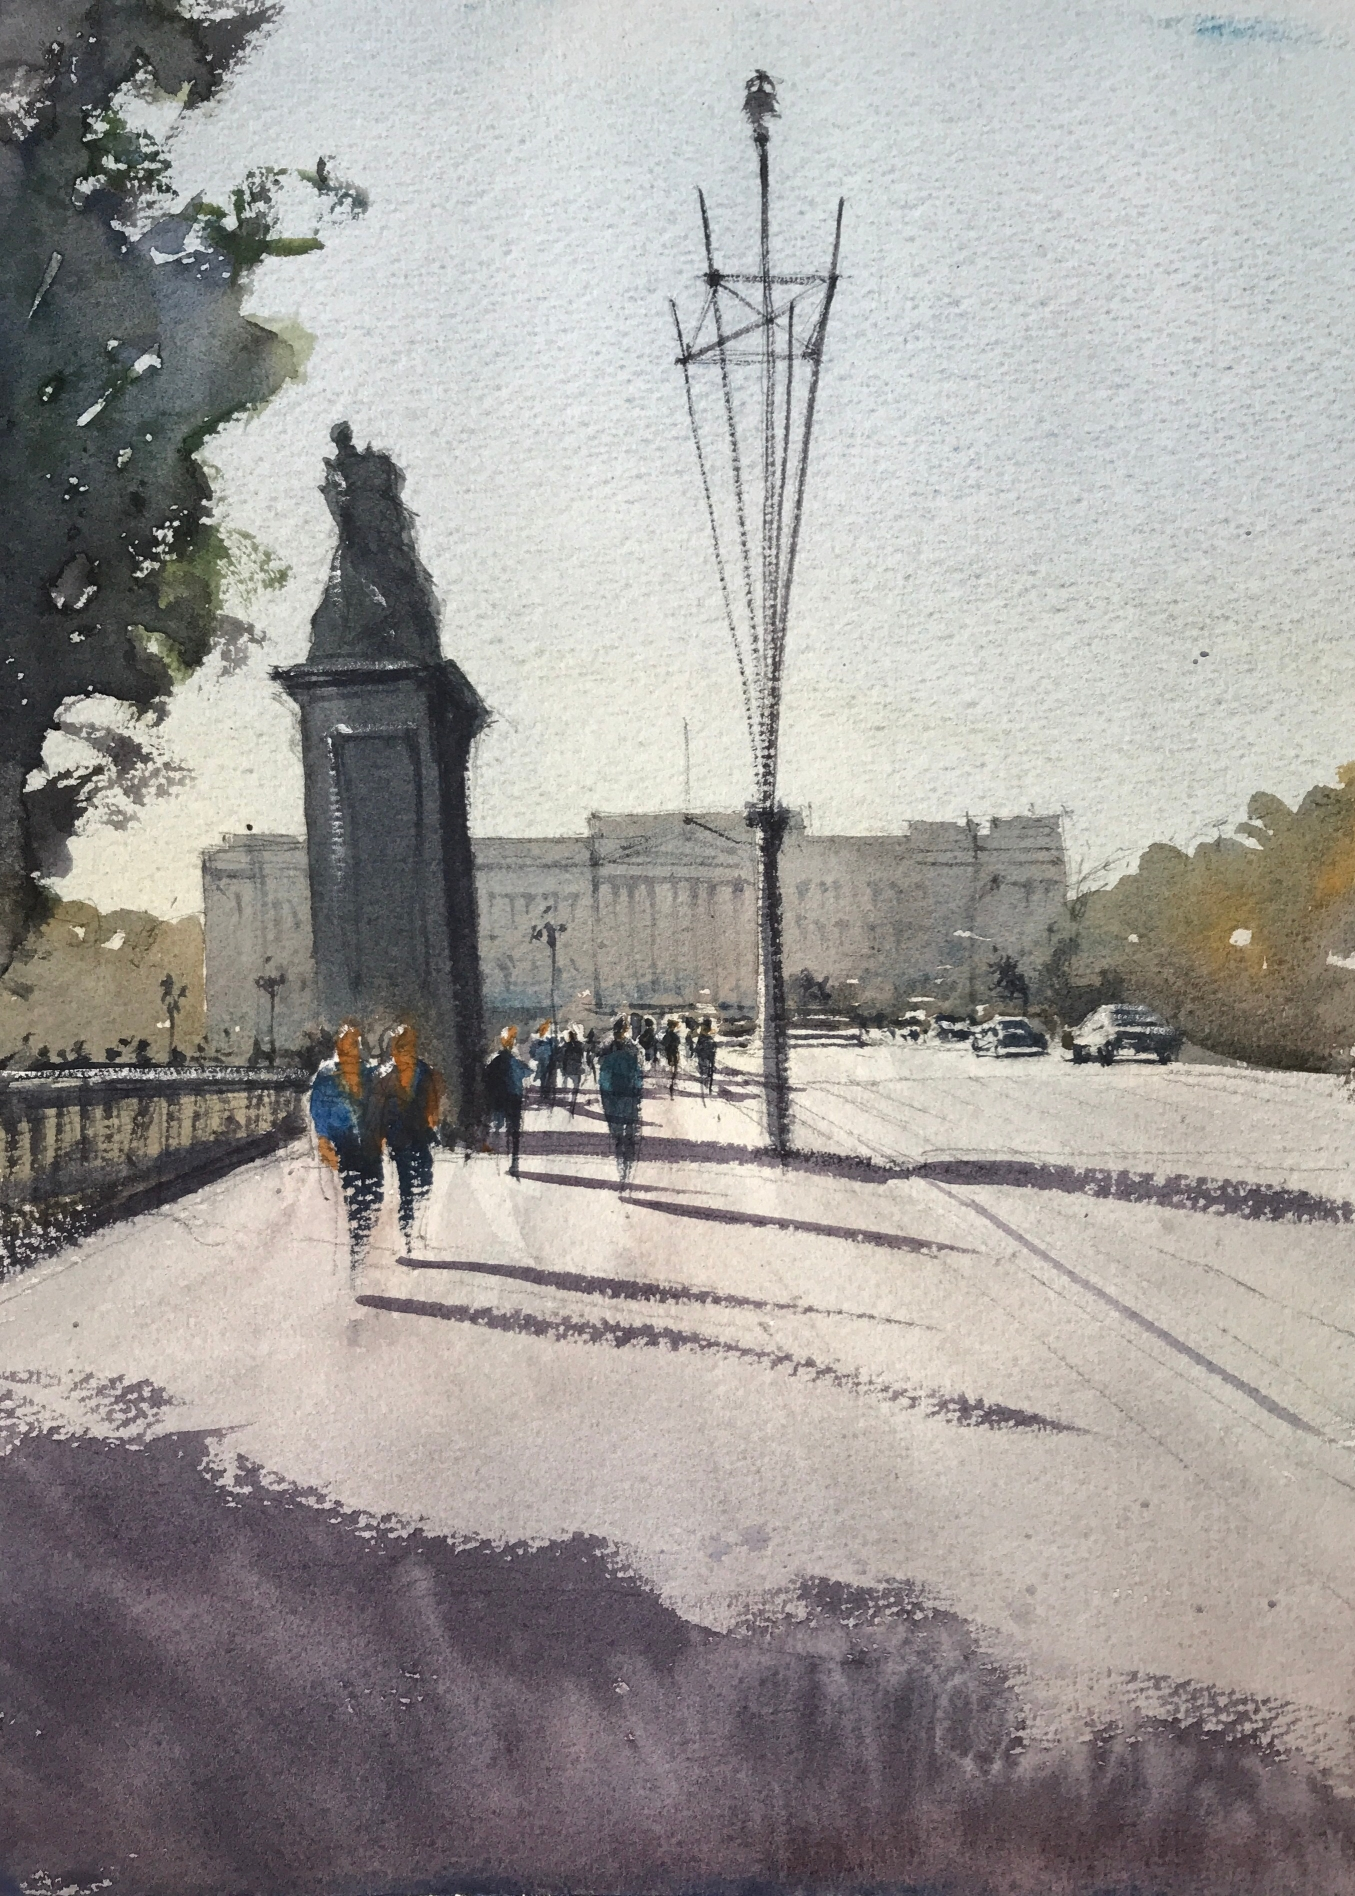 Plein air watercolour painting from The Mall looking towards Buckingham Palace by John Haywood